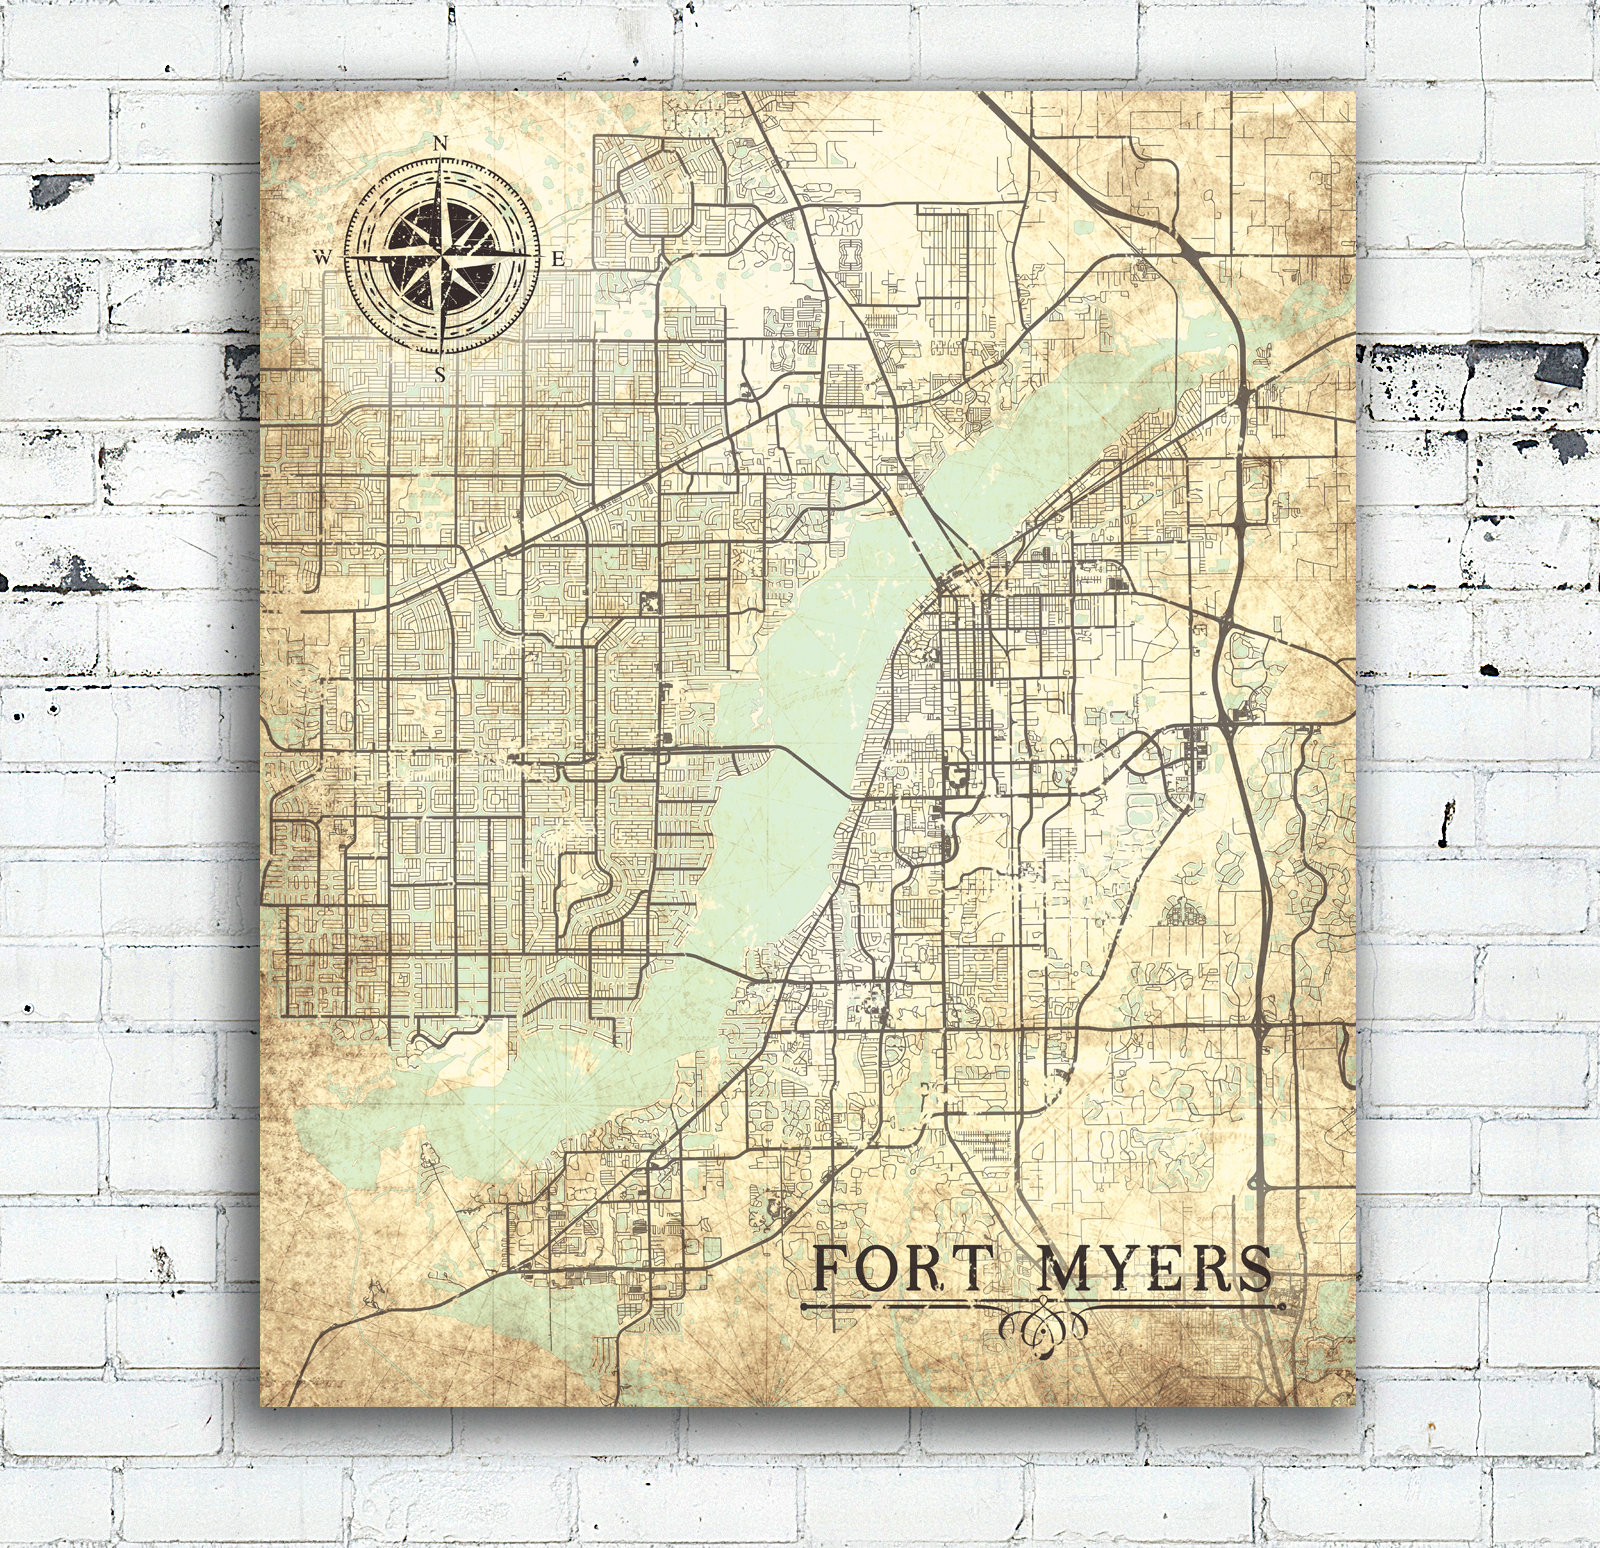 Fort Myers Fl Canvas Print Florida Vintage Map Fort Myers Vintage - Map Of Fort Myers Florida Area